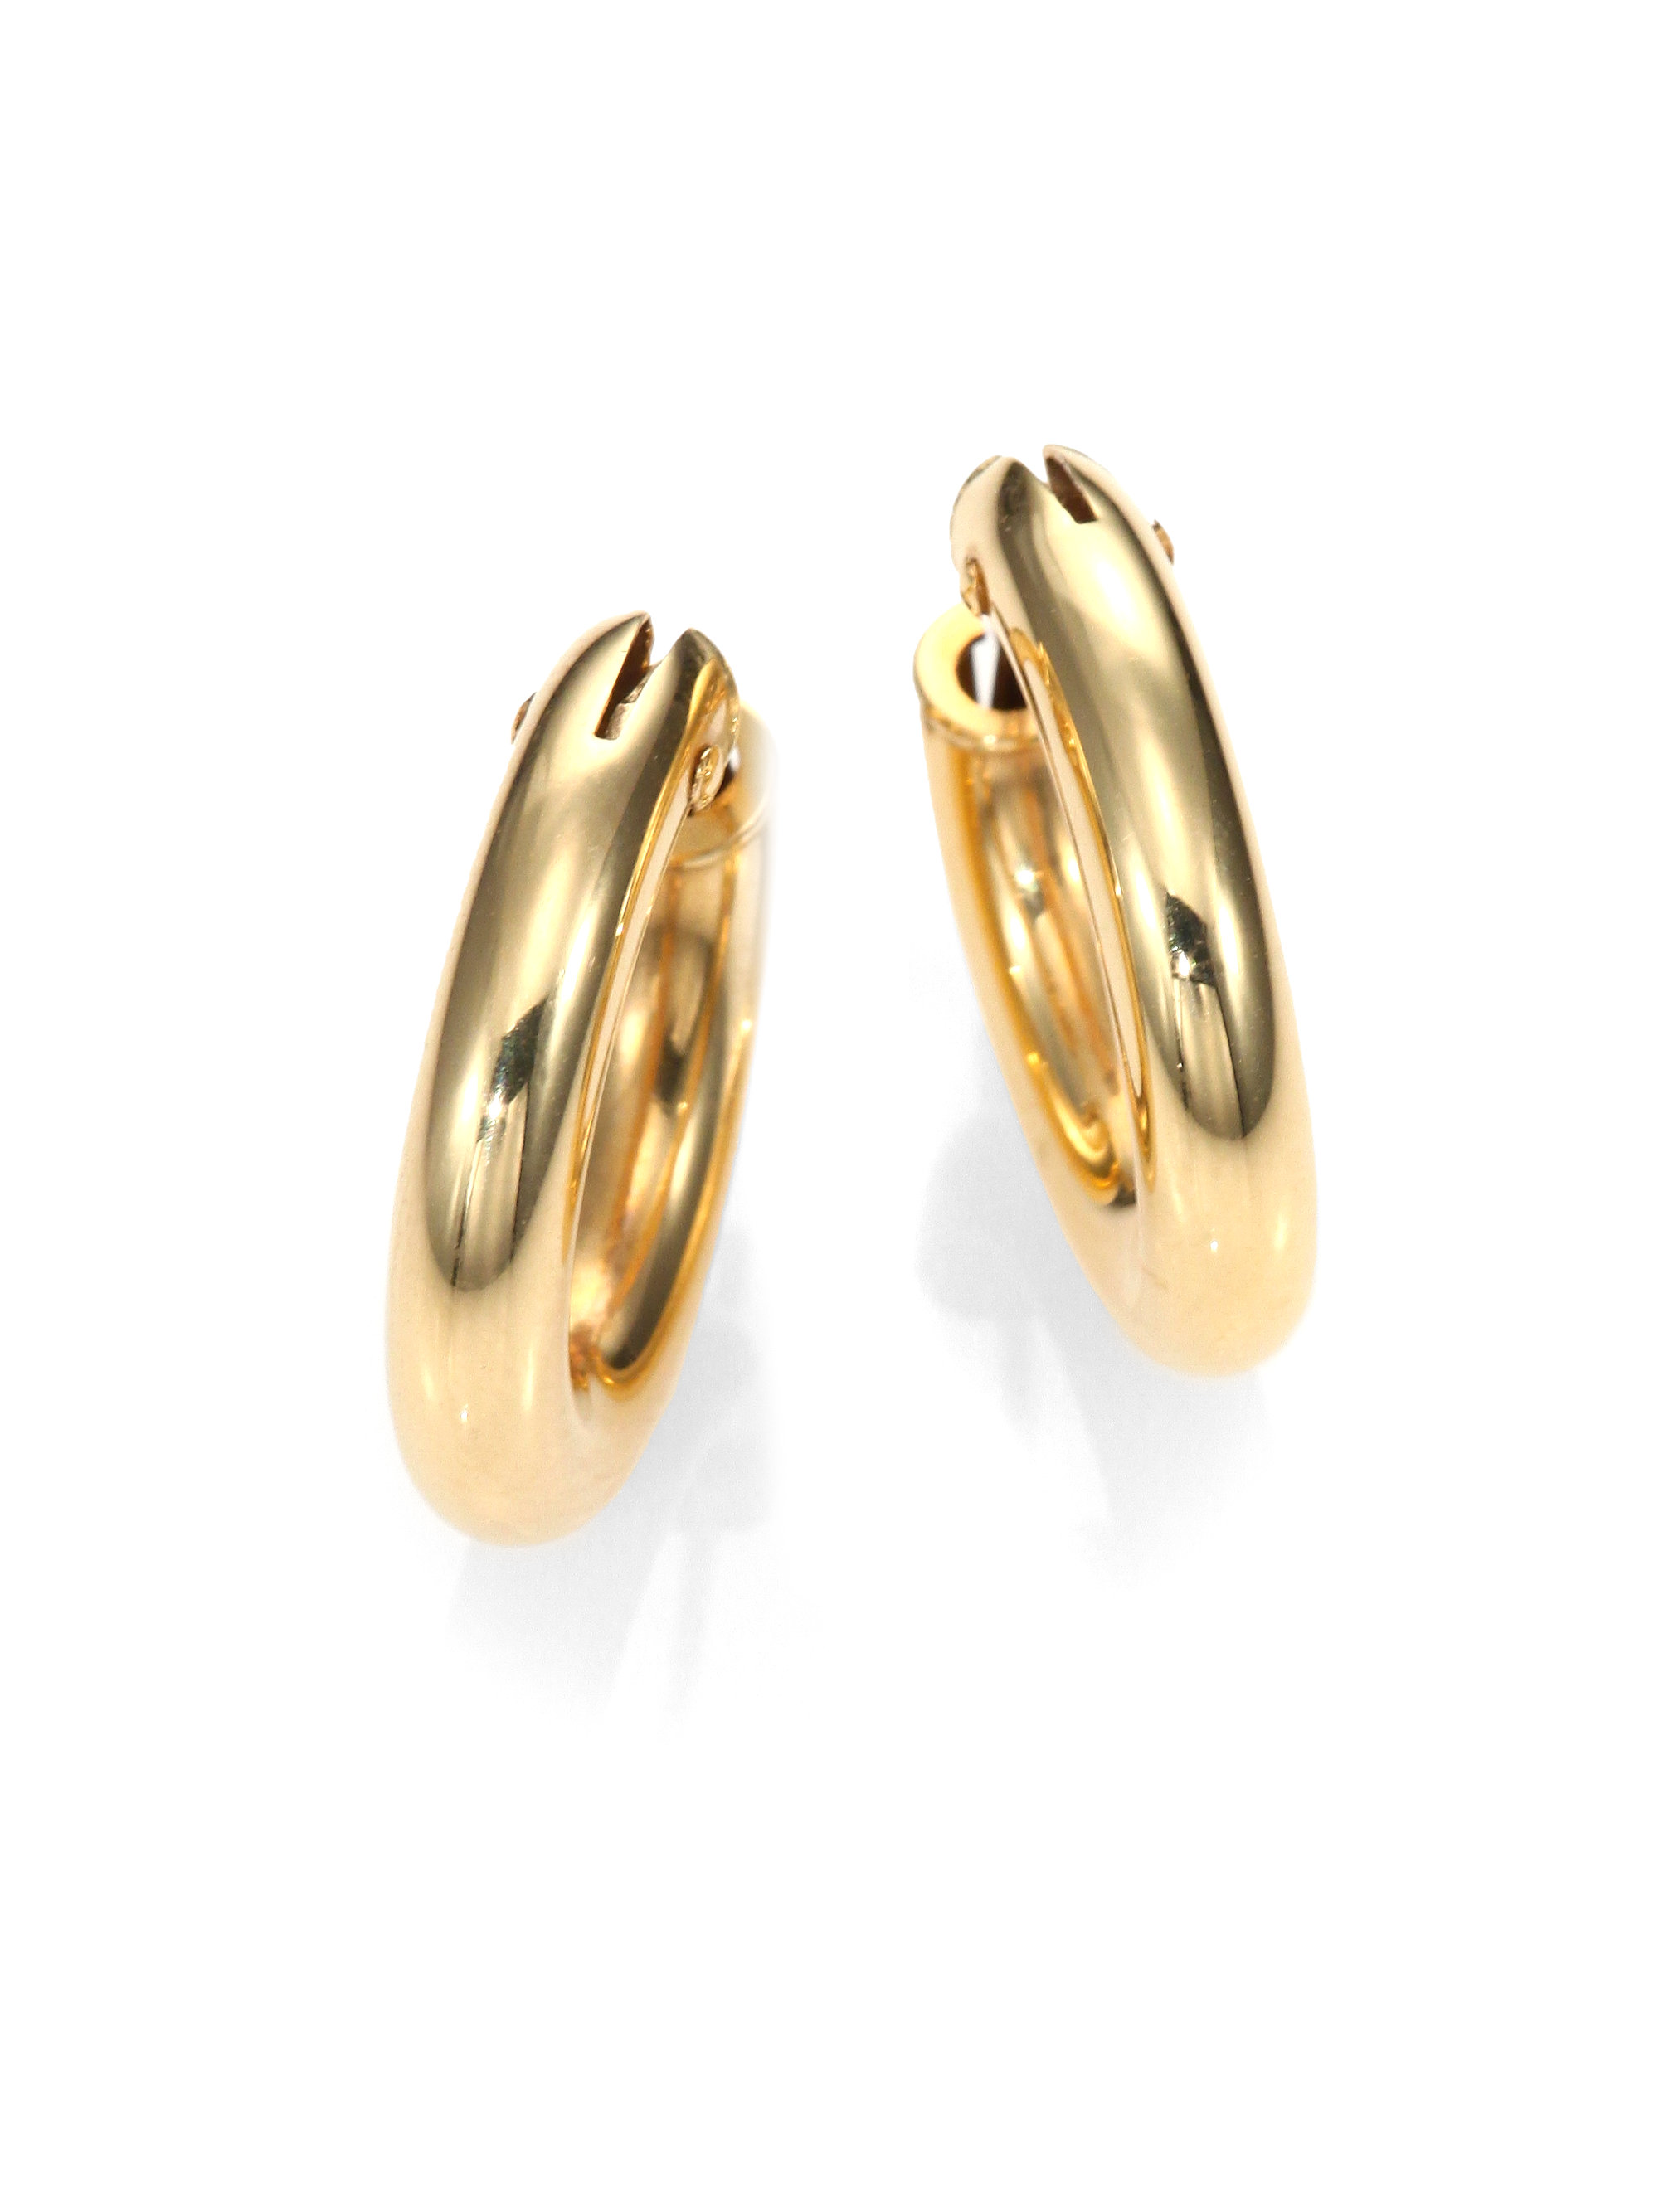 98042282d Inspired by the effortless style of French women, these earrings possess an  air of quotidien that so many emulate but very few accomplish.